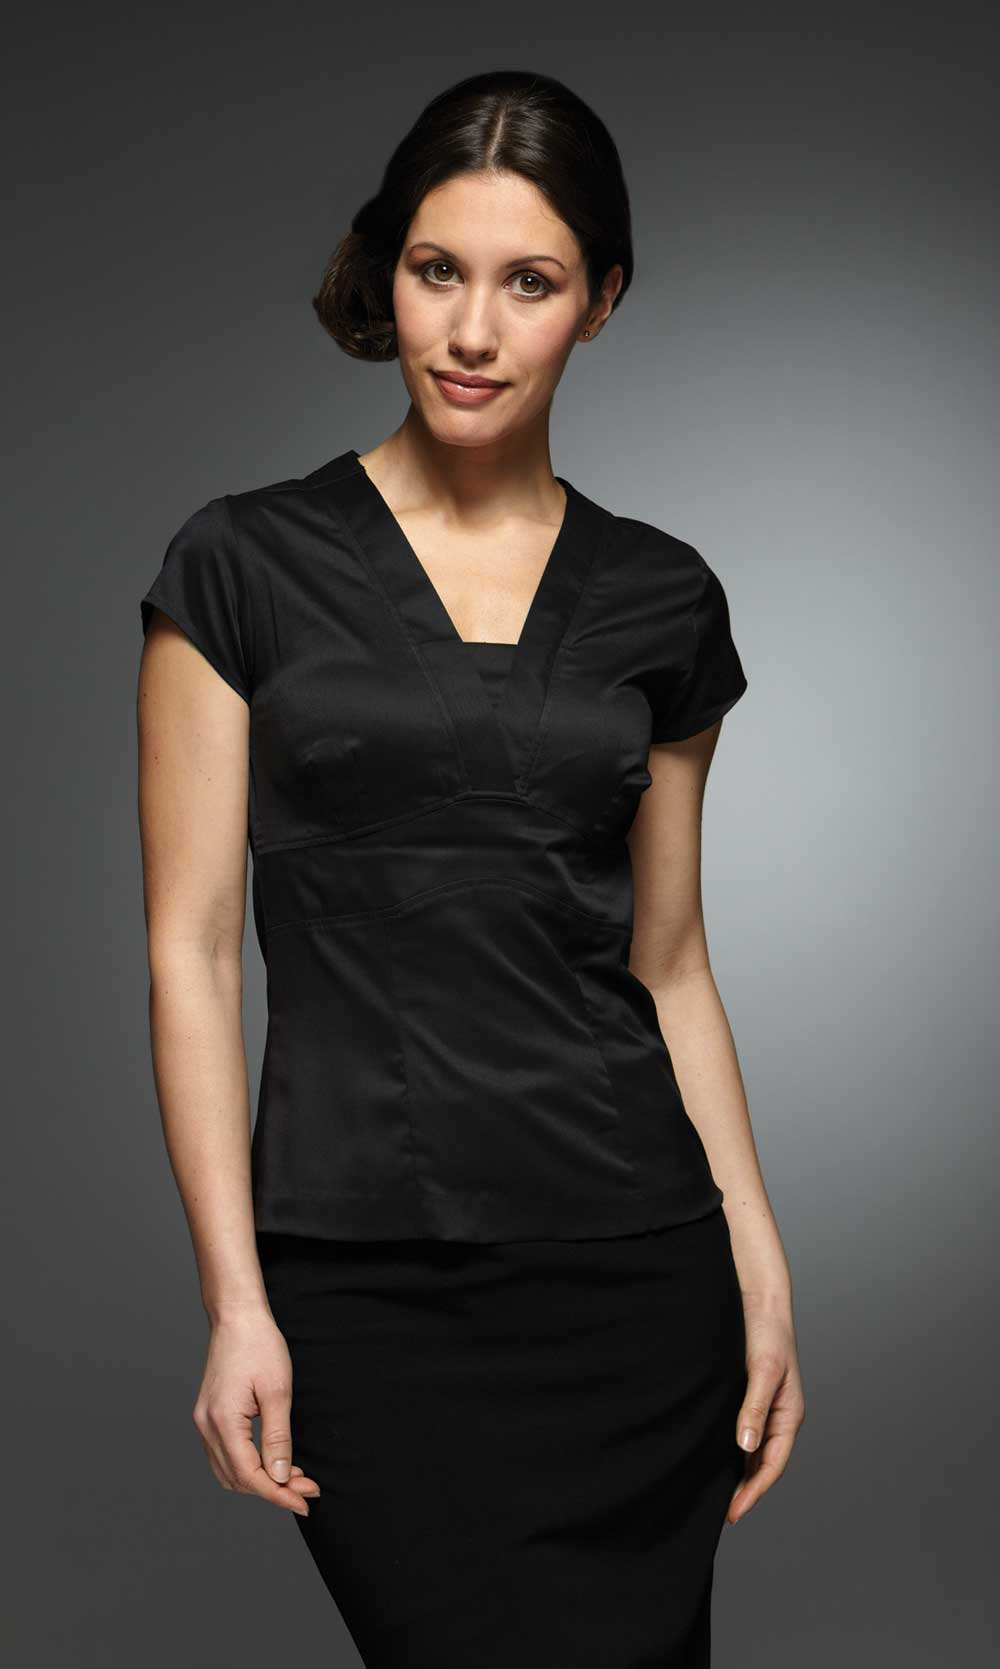 Black Blouse For Work - Tie Blouse